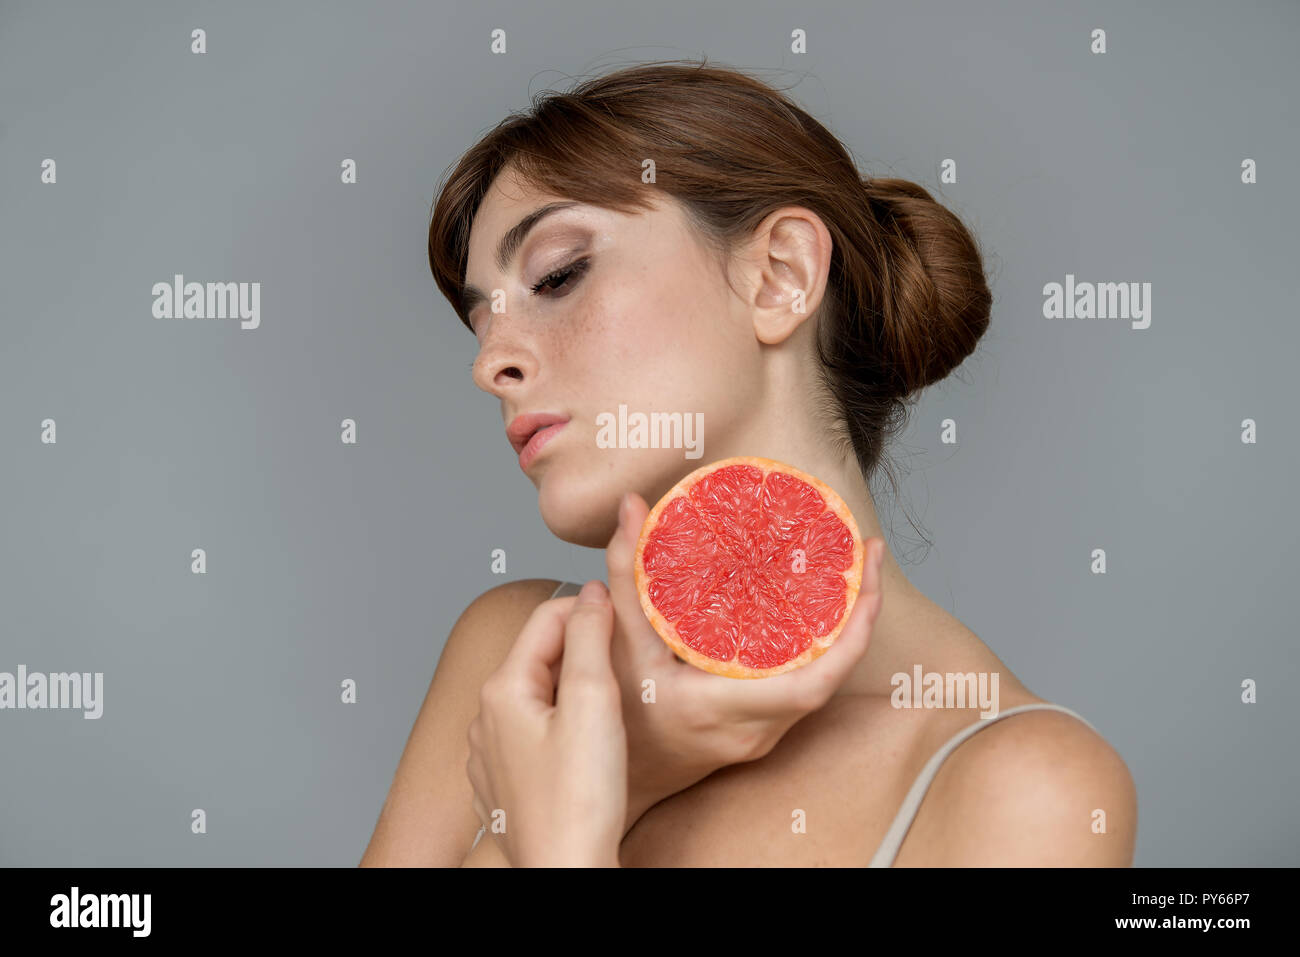 Various expression by young girl with fresh grapefruit   on neutral background - Stock Image